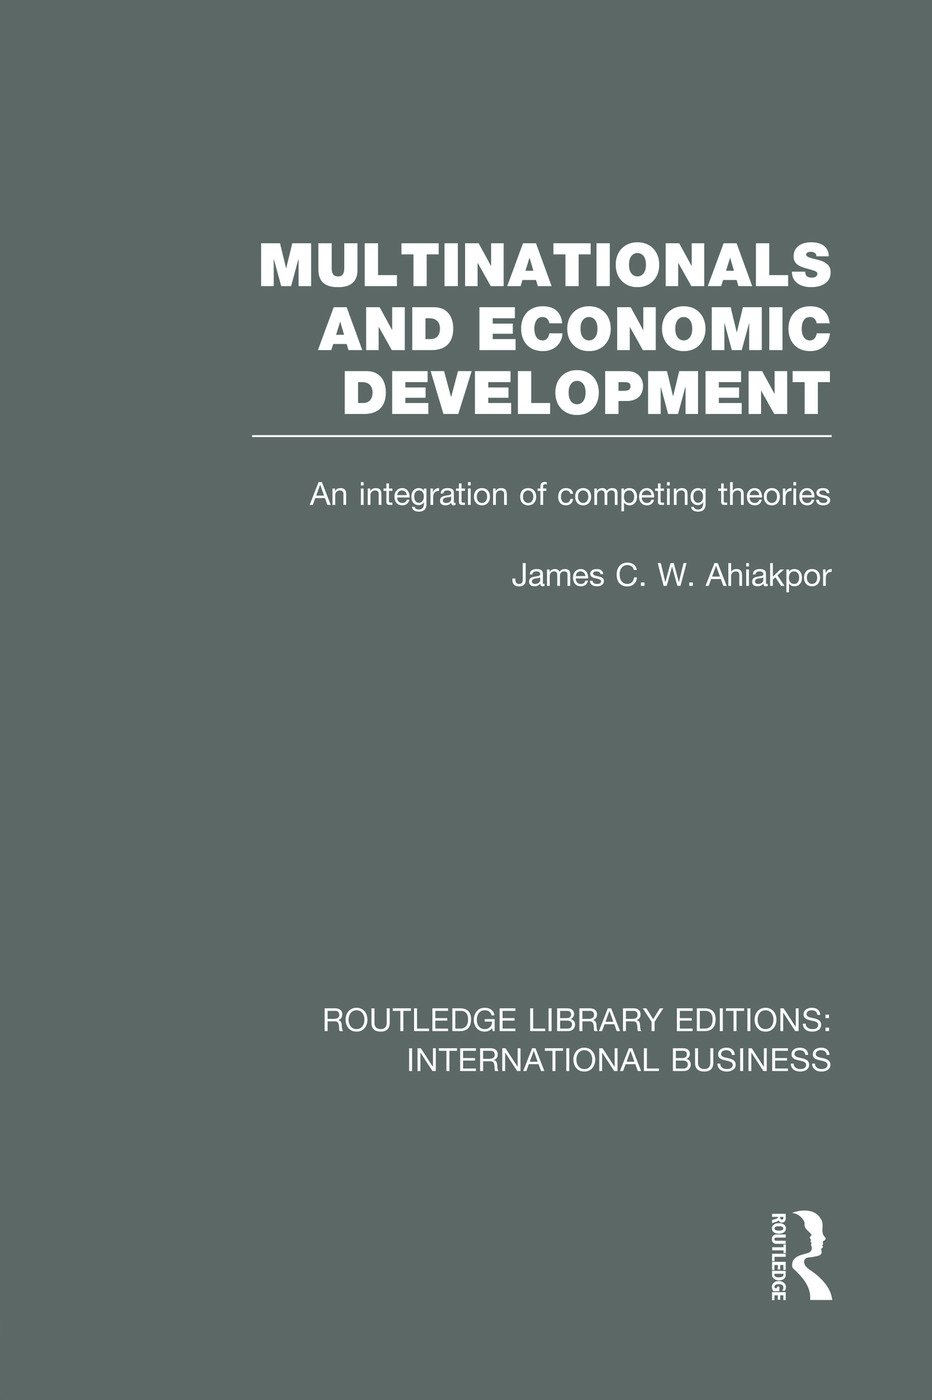 Multinationals and Economic Development (RLE International Business): An Integration of Competing Theories, 1st Edition (Paperback) book cover